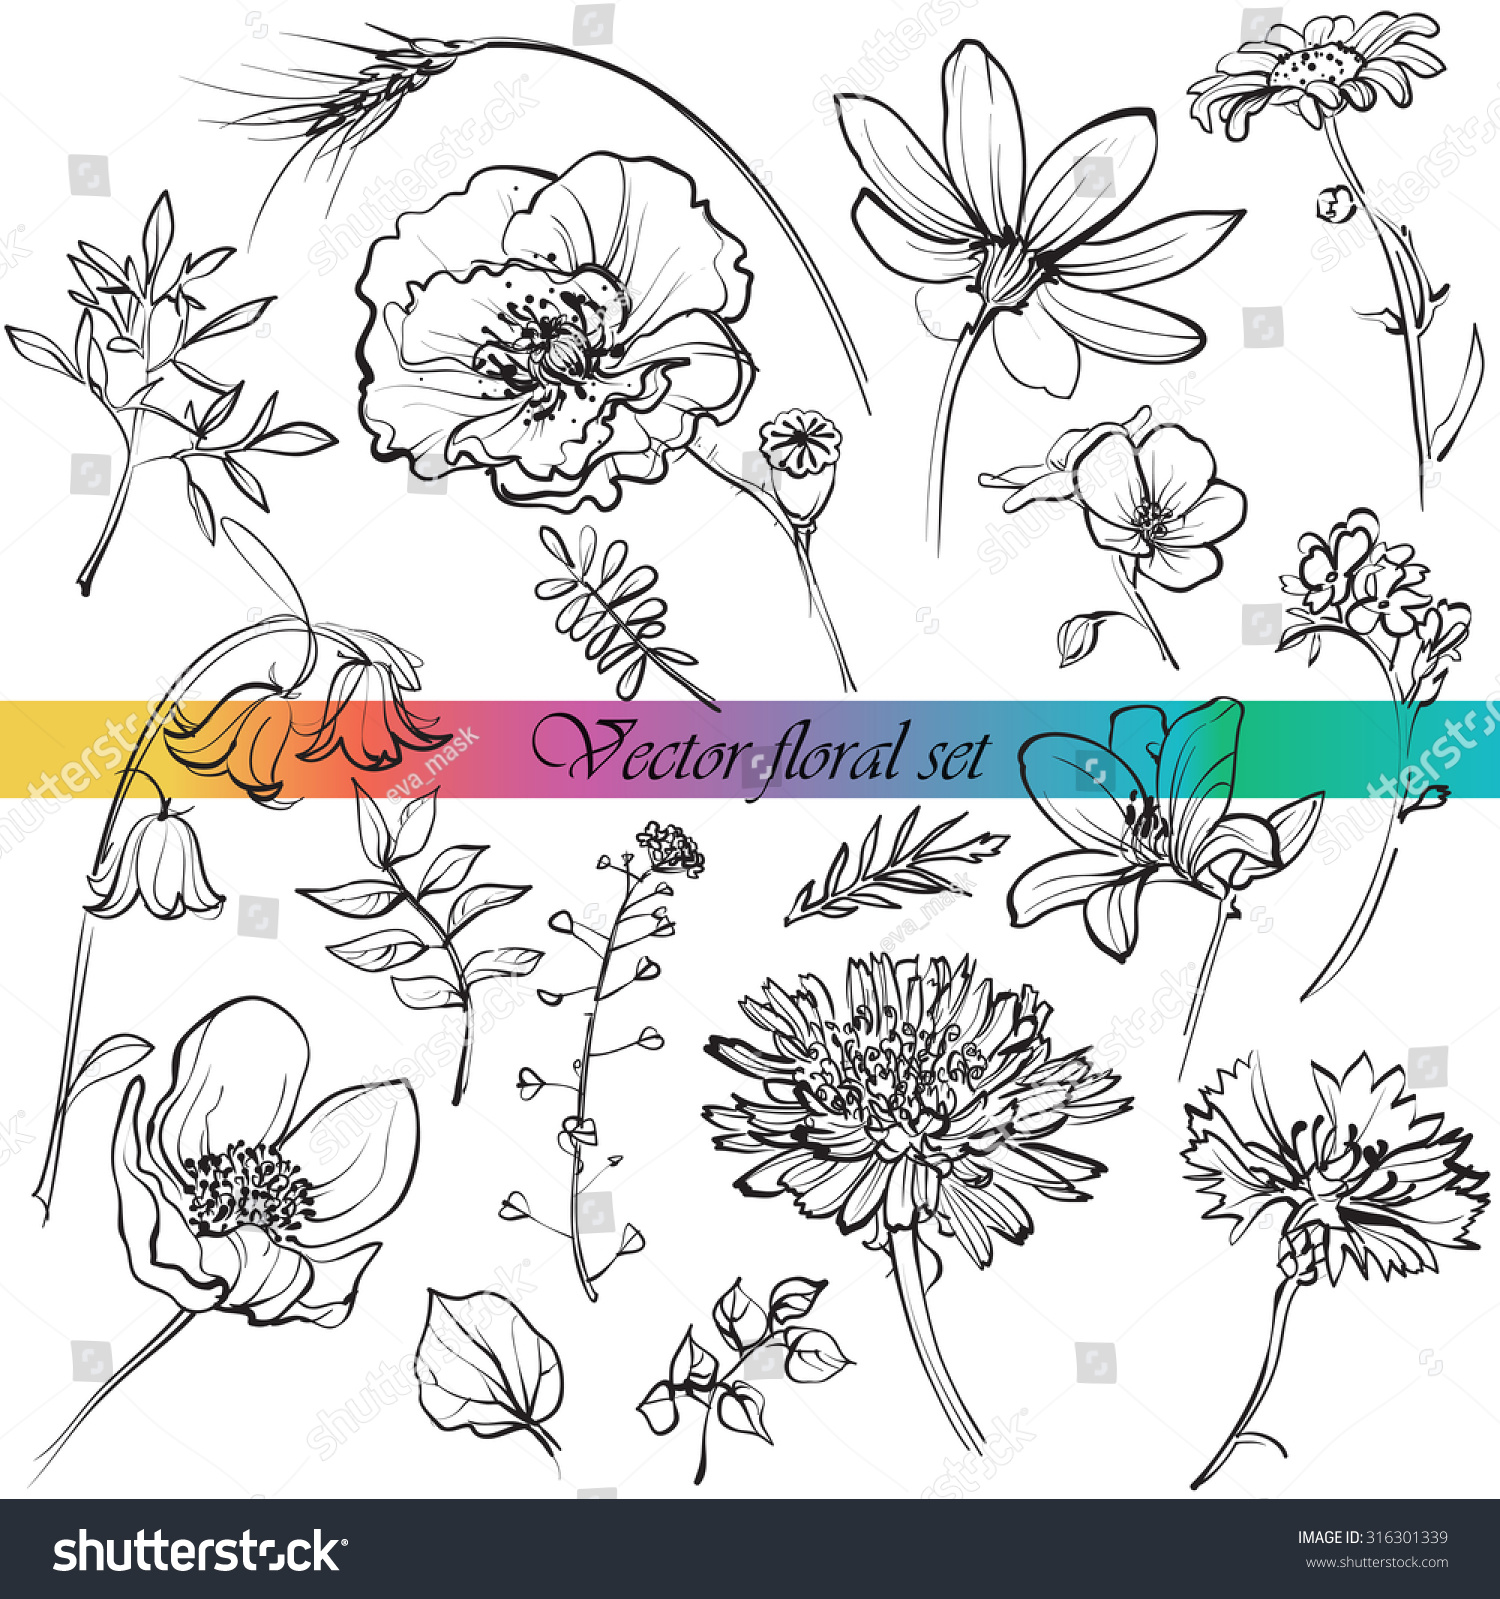 Wildflower Line Drawing : Line drawings of wildflowers grasses and leaves for your